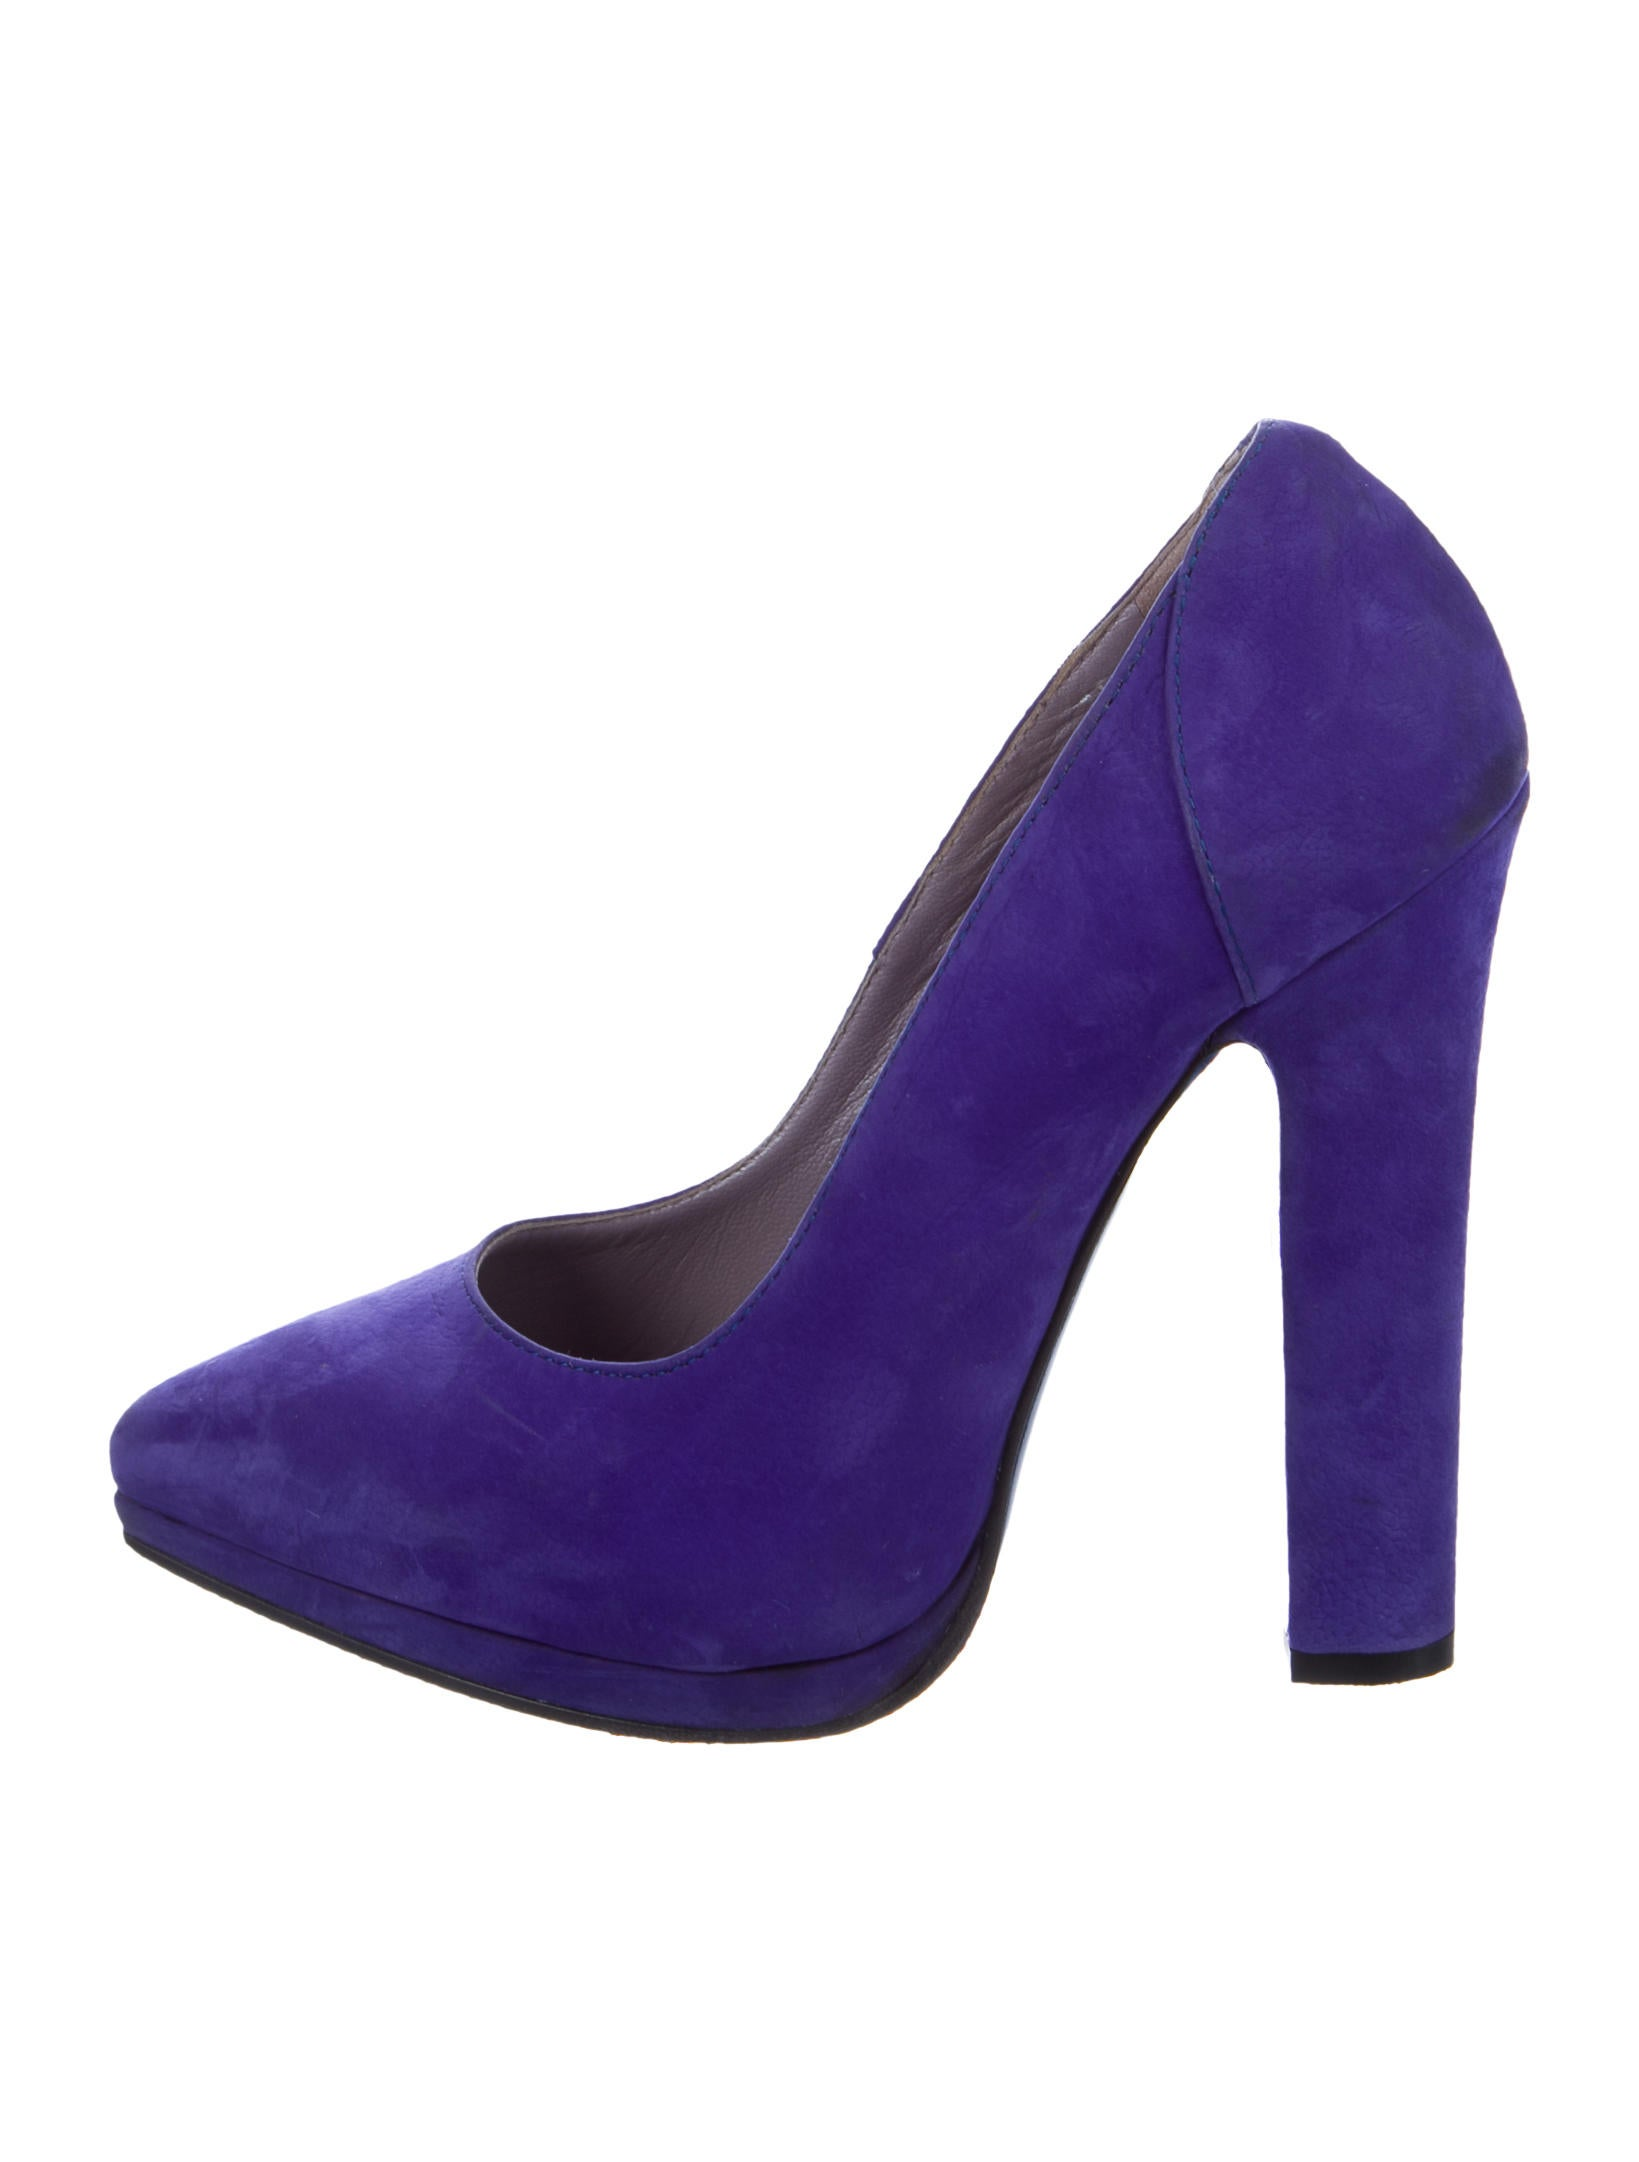 Versace Pointed Toe Platform Pumps Shoes VES31285  : VES312851enlarged from www.therealreal.com size 1639 x 2162 jpeg 105kB